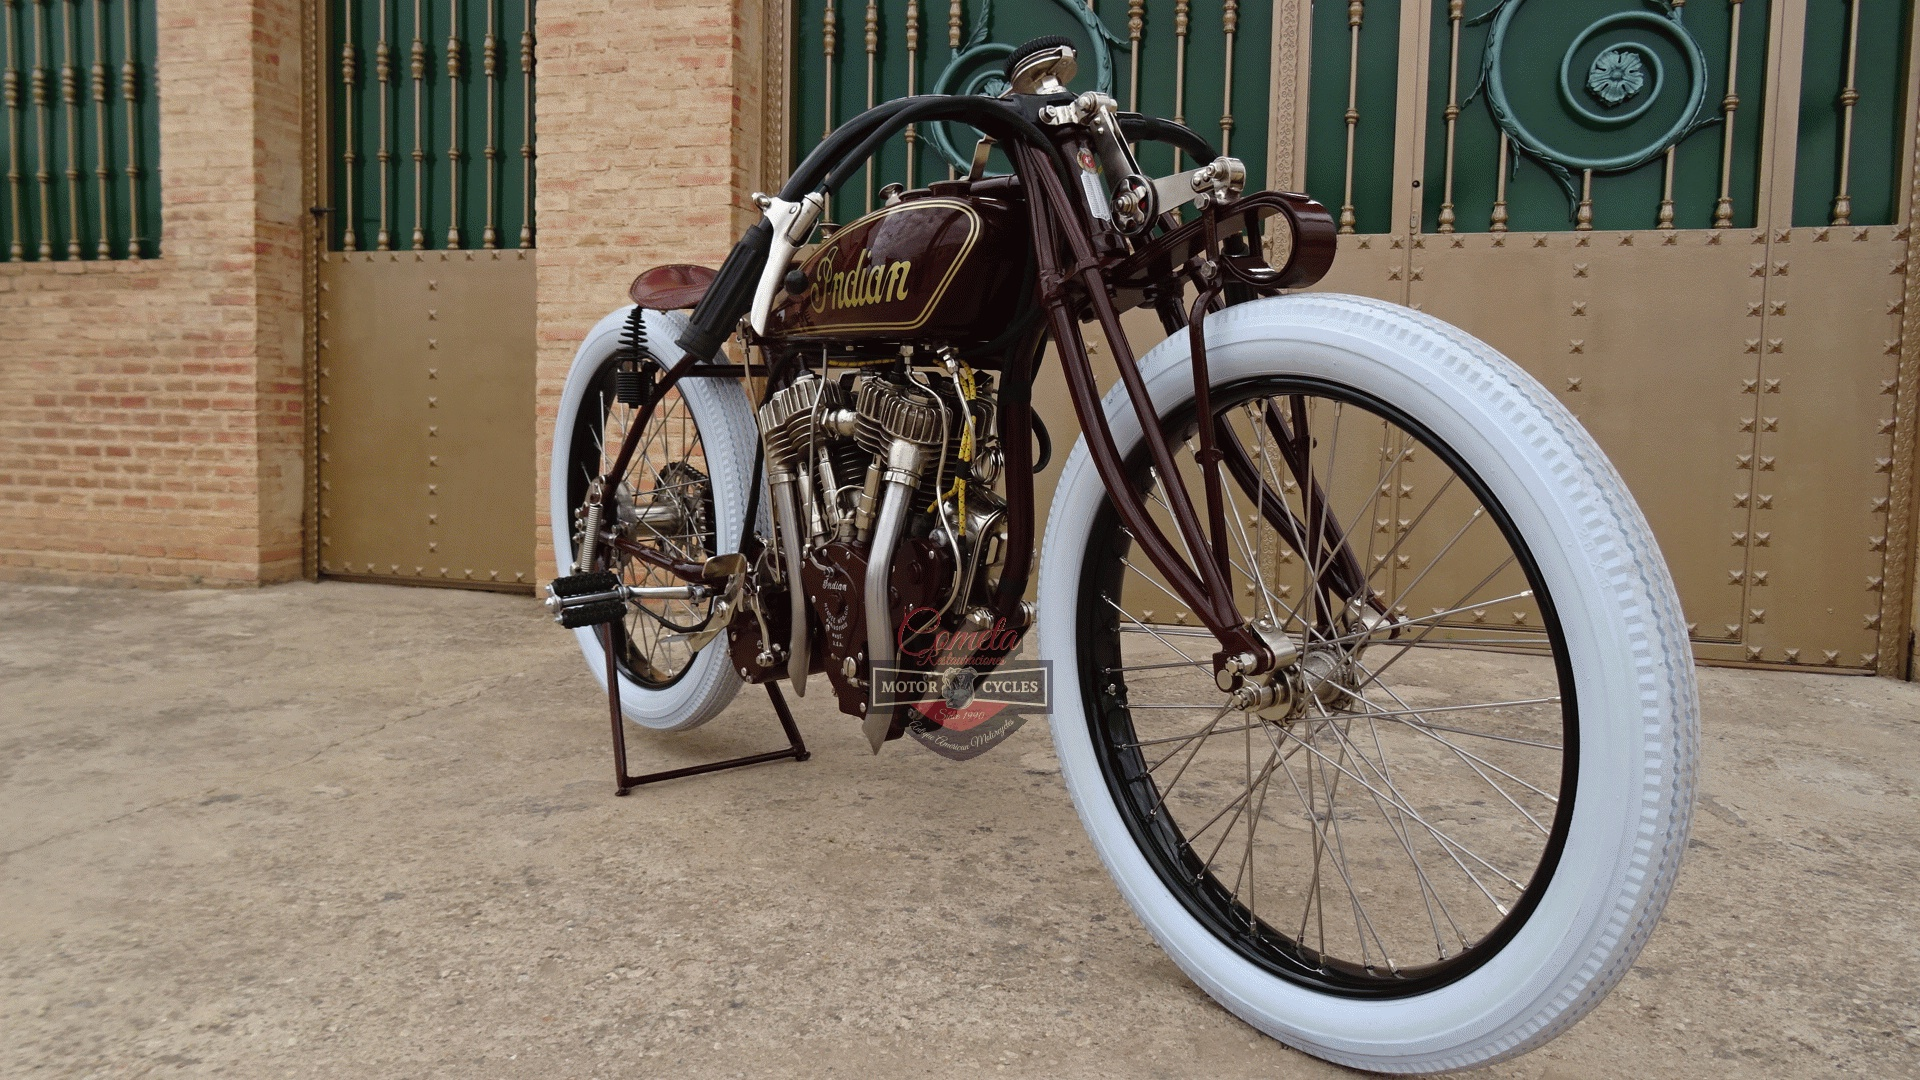 INDIAN POWERPLUS TT RACER AÑO 1920 1000cc